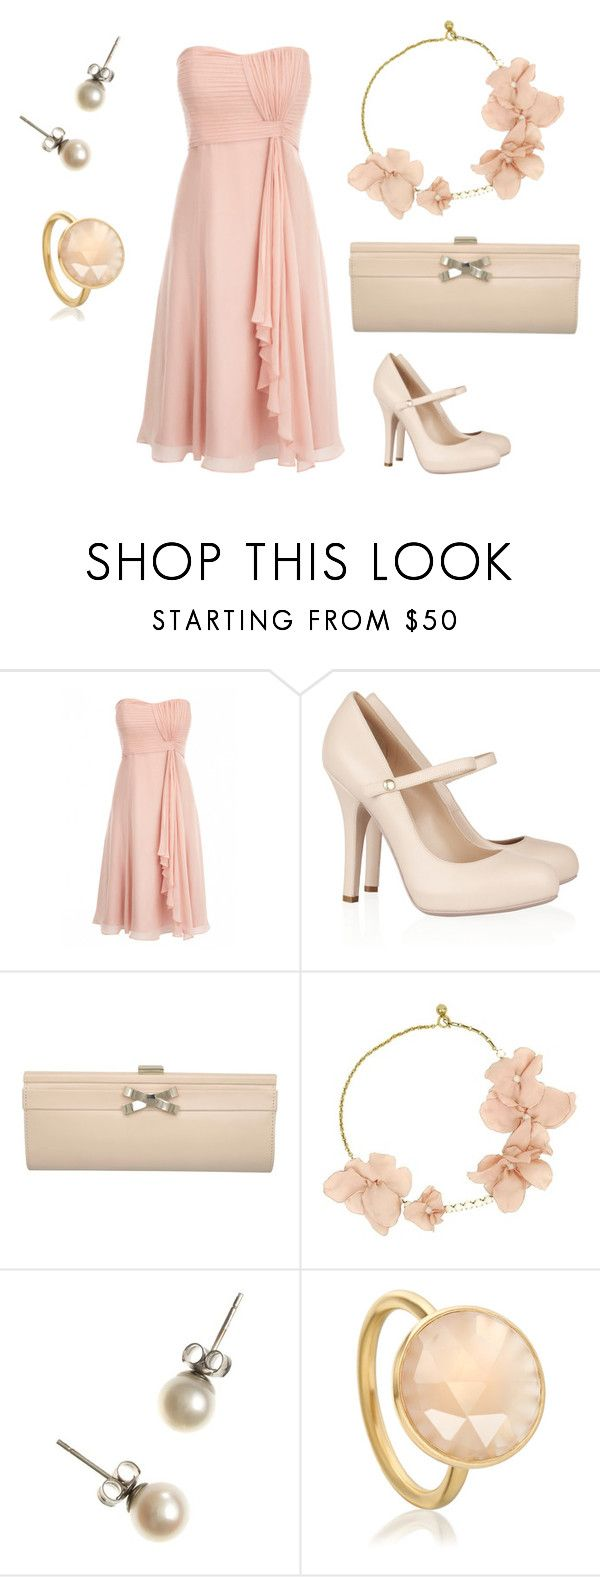 """""""One Dress, Four Ways"""" by annieg-1 ❤ liked on Polyvore featuring Dolce&Gabbana, Dune, Lanvin, J.Crew, Astley Clarke and pretty in pink"""